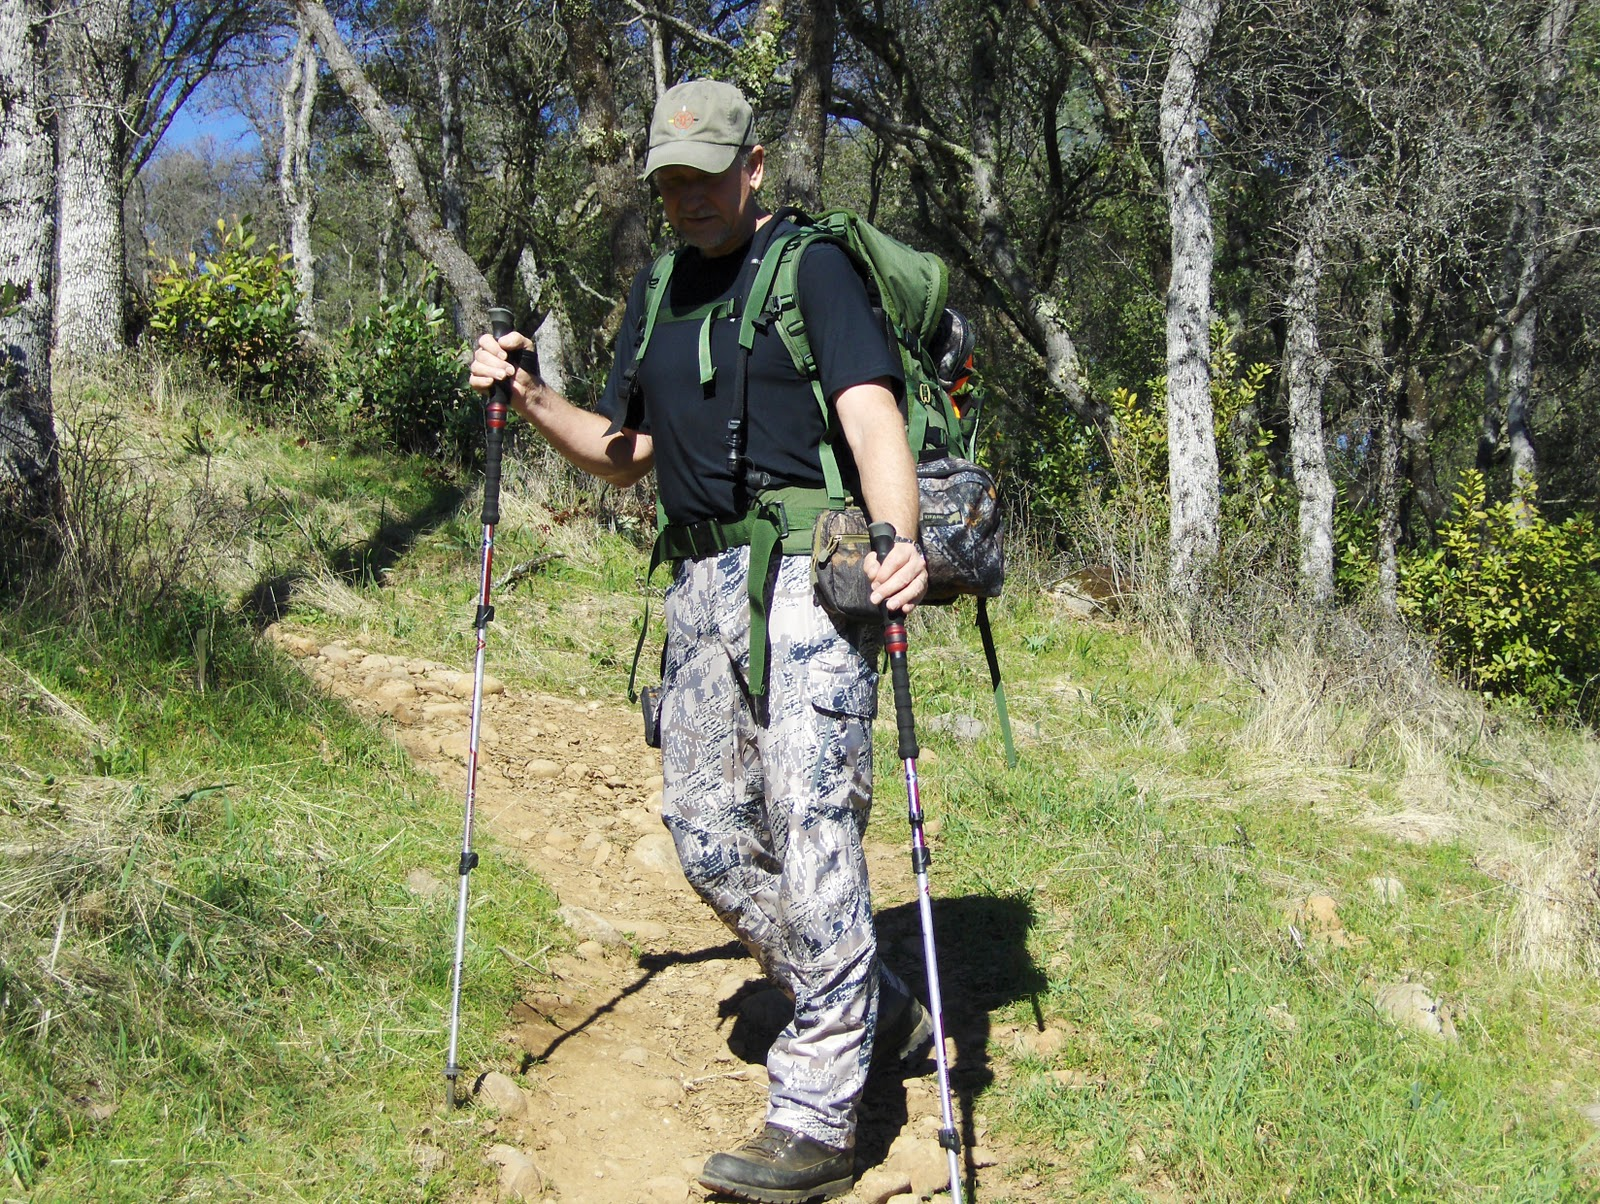 Watch How to Adjust Hiking Poles video